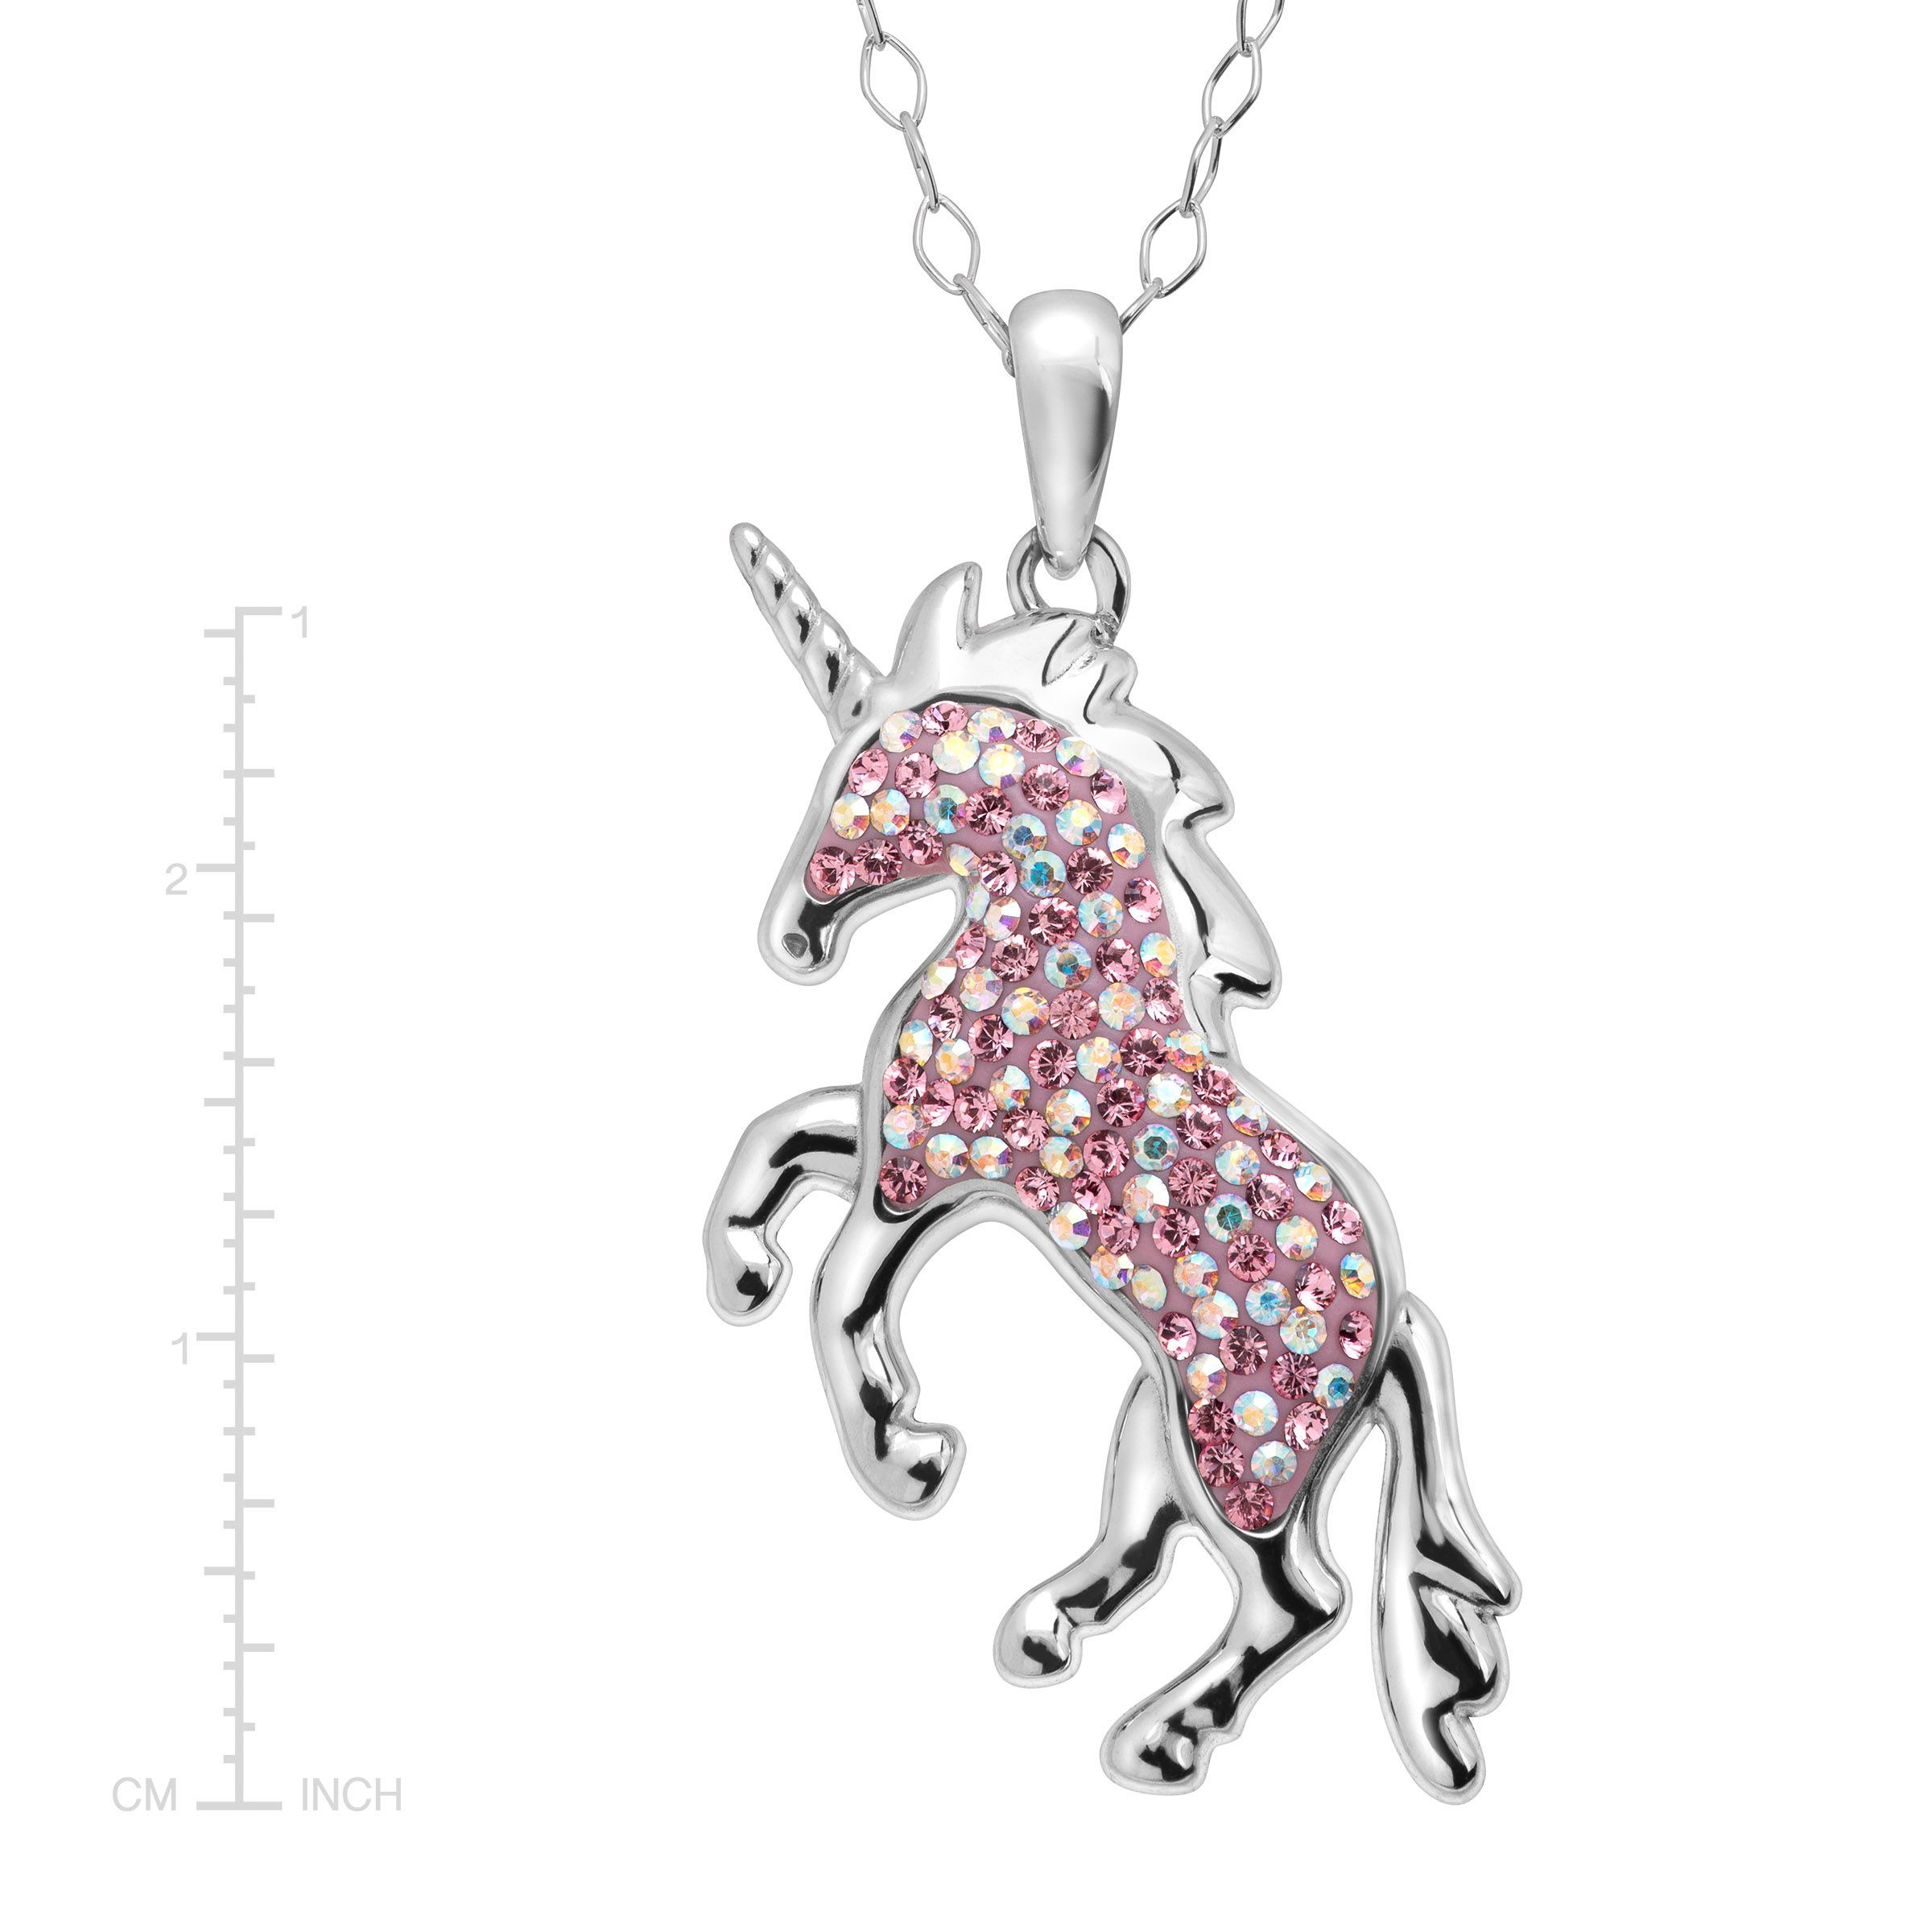 hei crystal artistique swarovski crystals elements sterling necklace wid silver sharpen with product jsp unicorn op pendant made prd